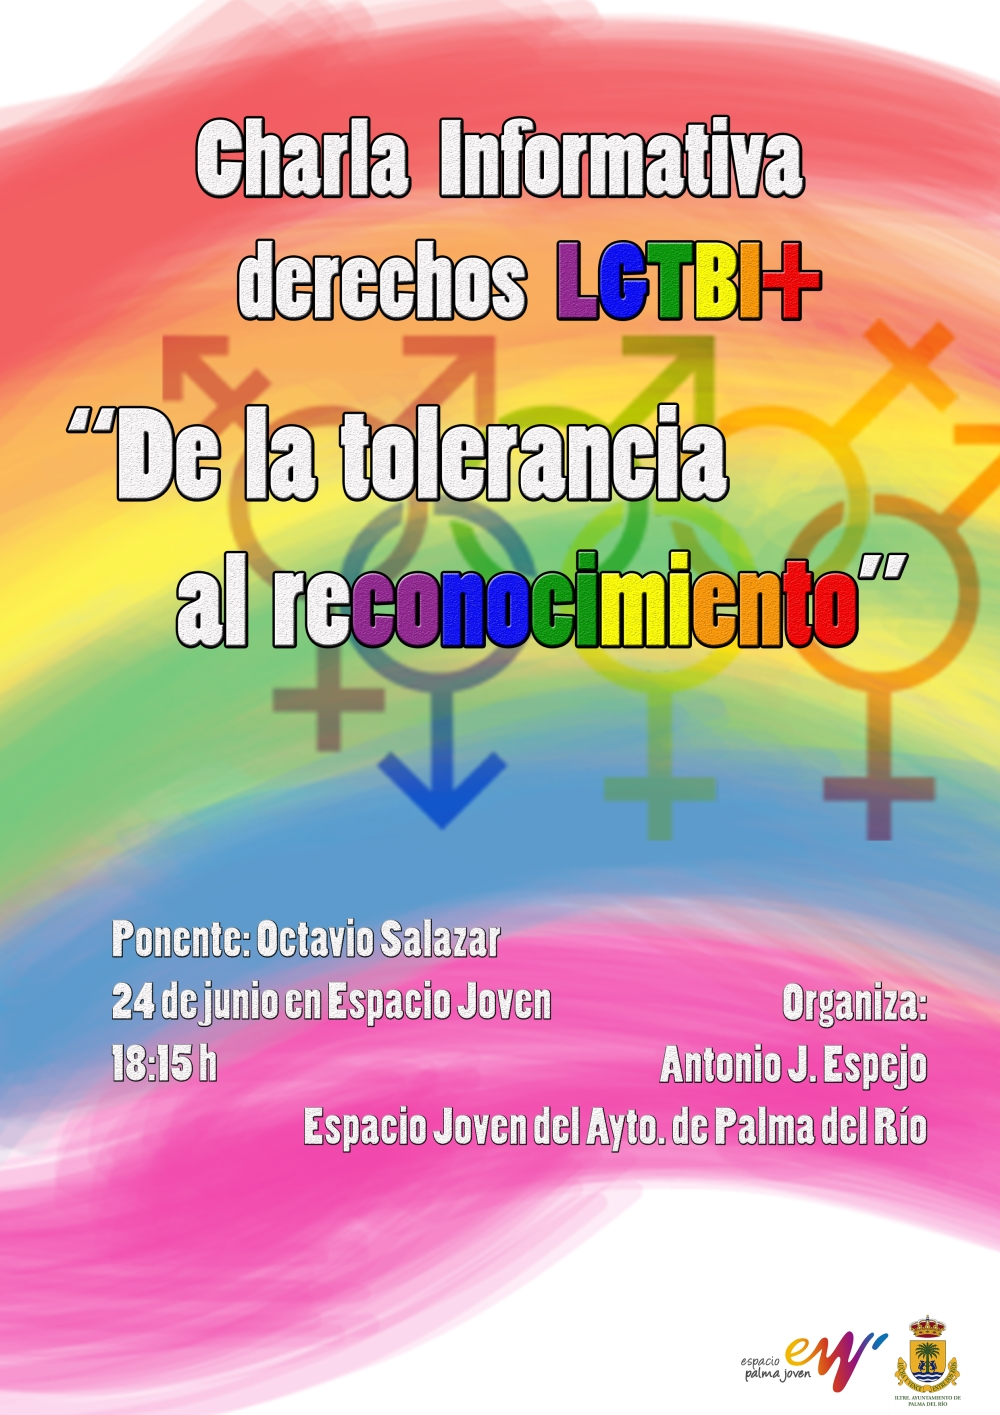 https://www.palmadelrio.es/sites/default/files/charla_lgtbi.jpg